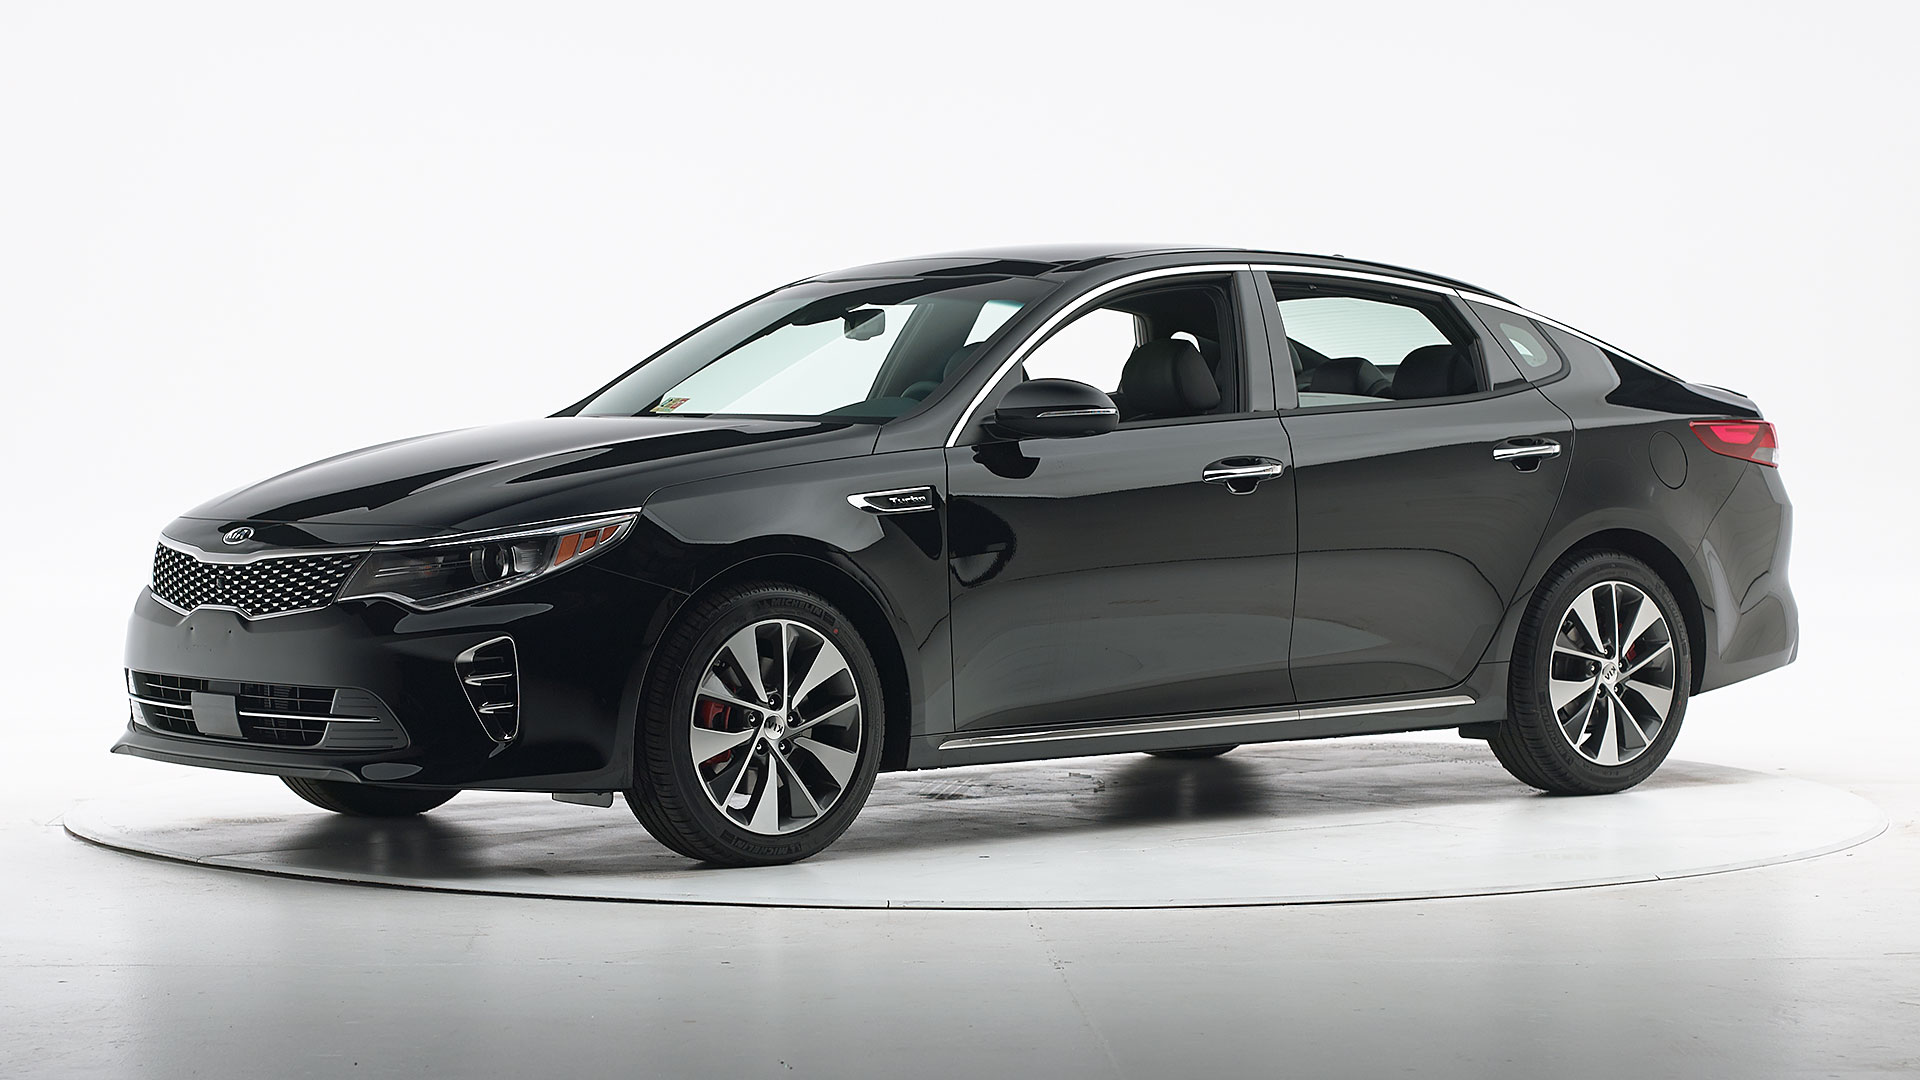 2017 Kia Optima 4-door sedan